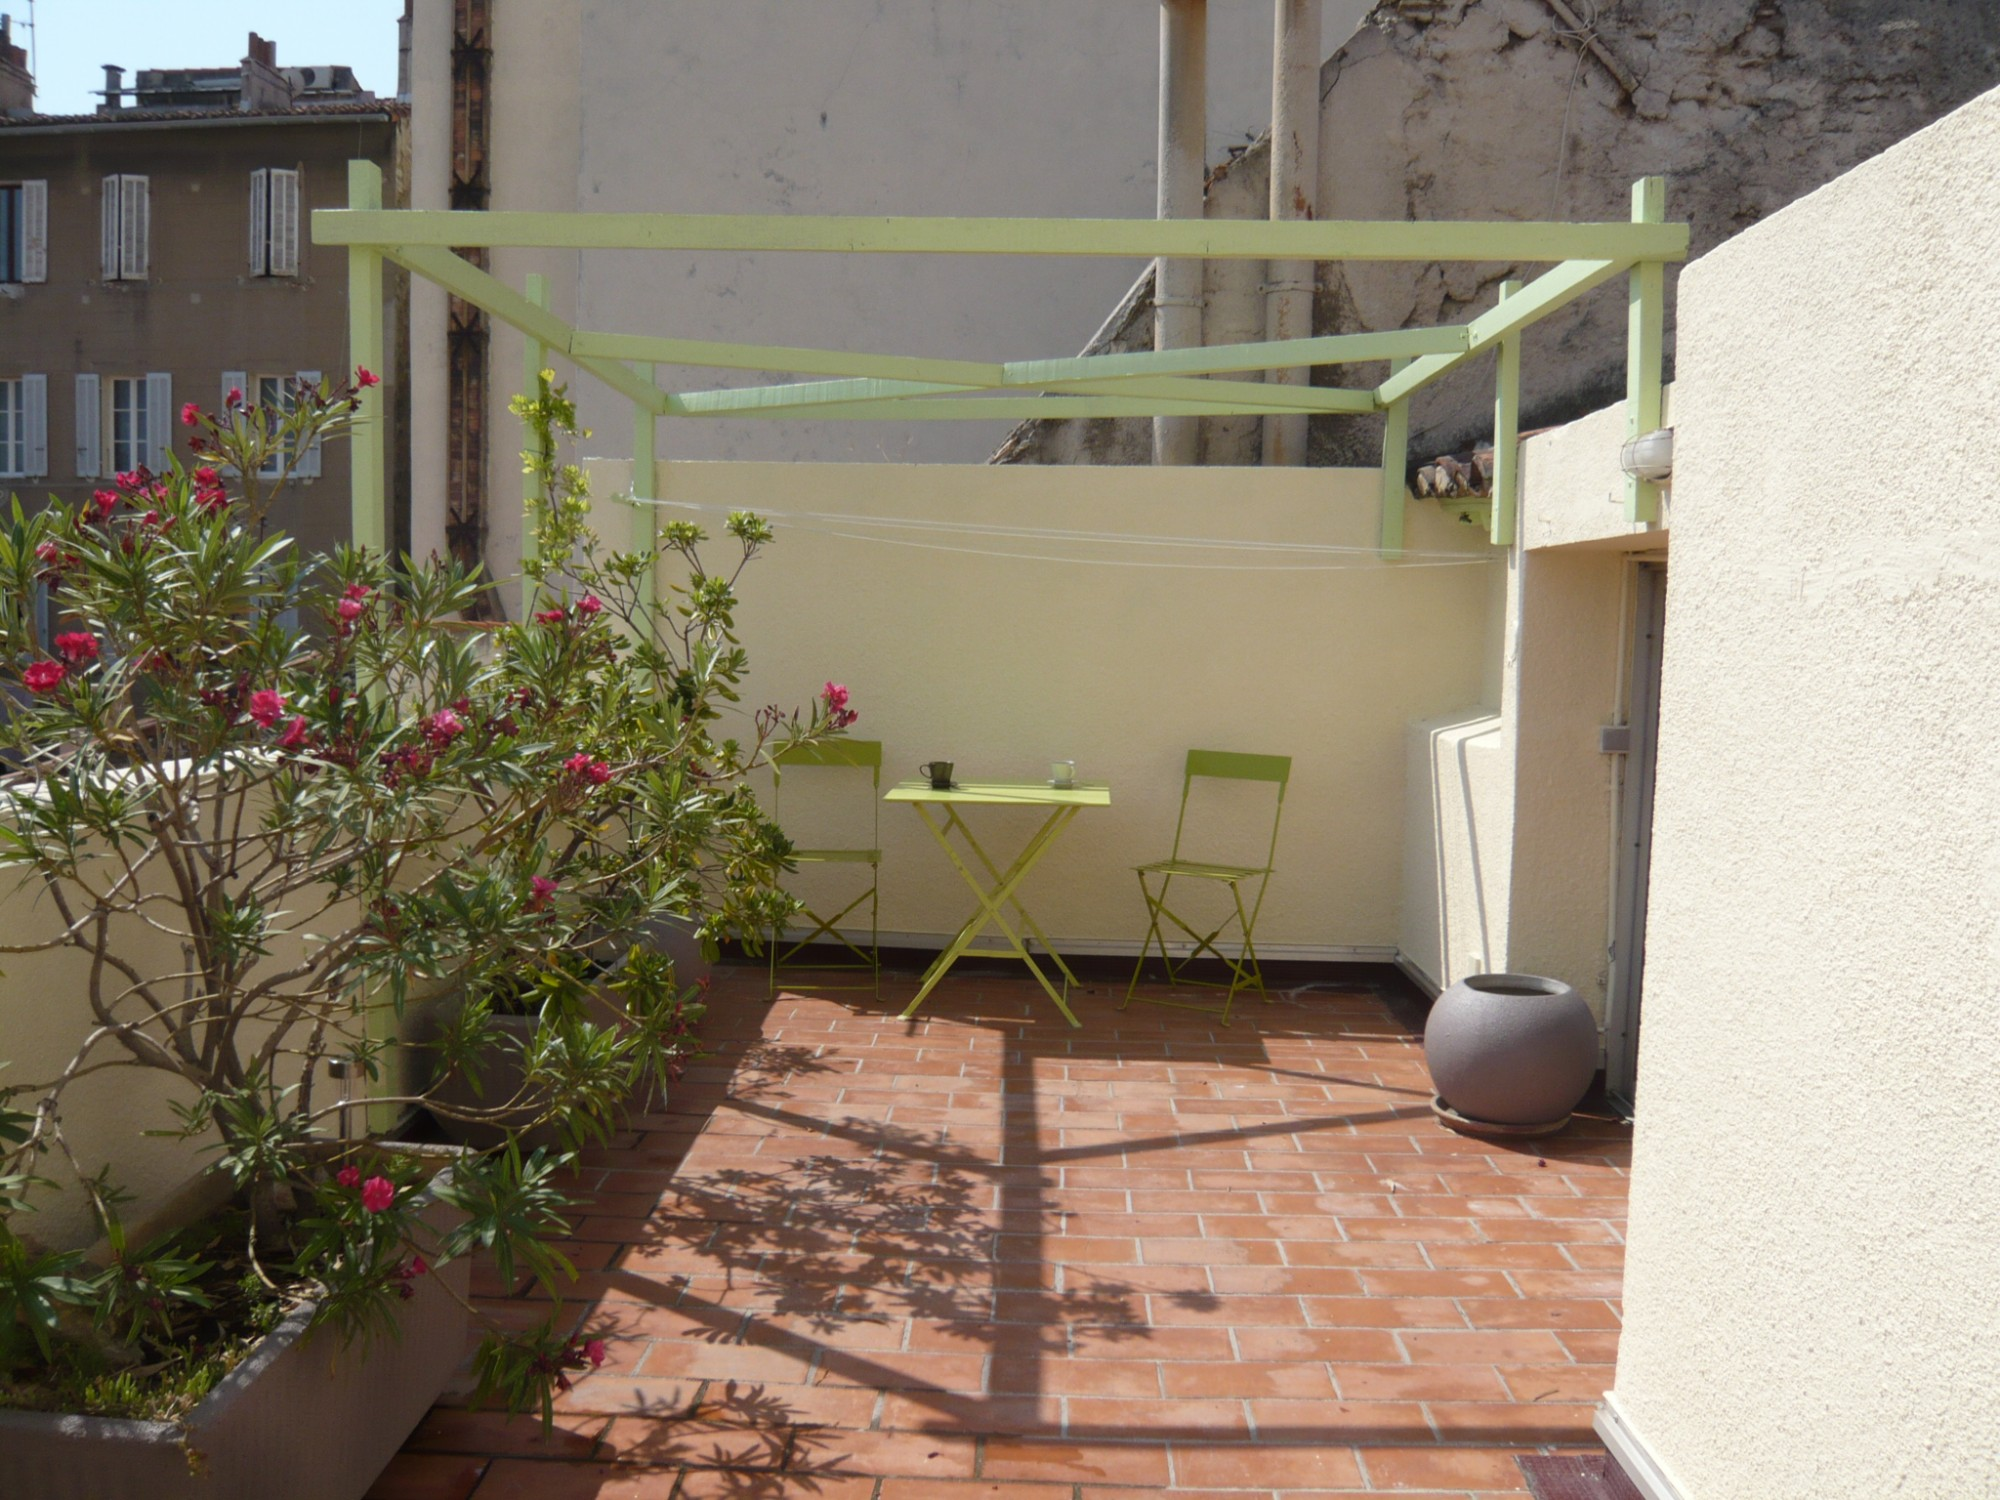 Ventes appartement t2 f2 marseille 07 quartier saint for Location appartement marseille terrasse